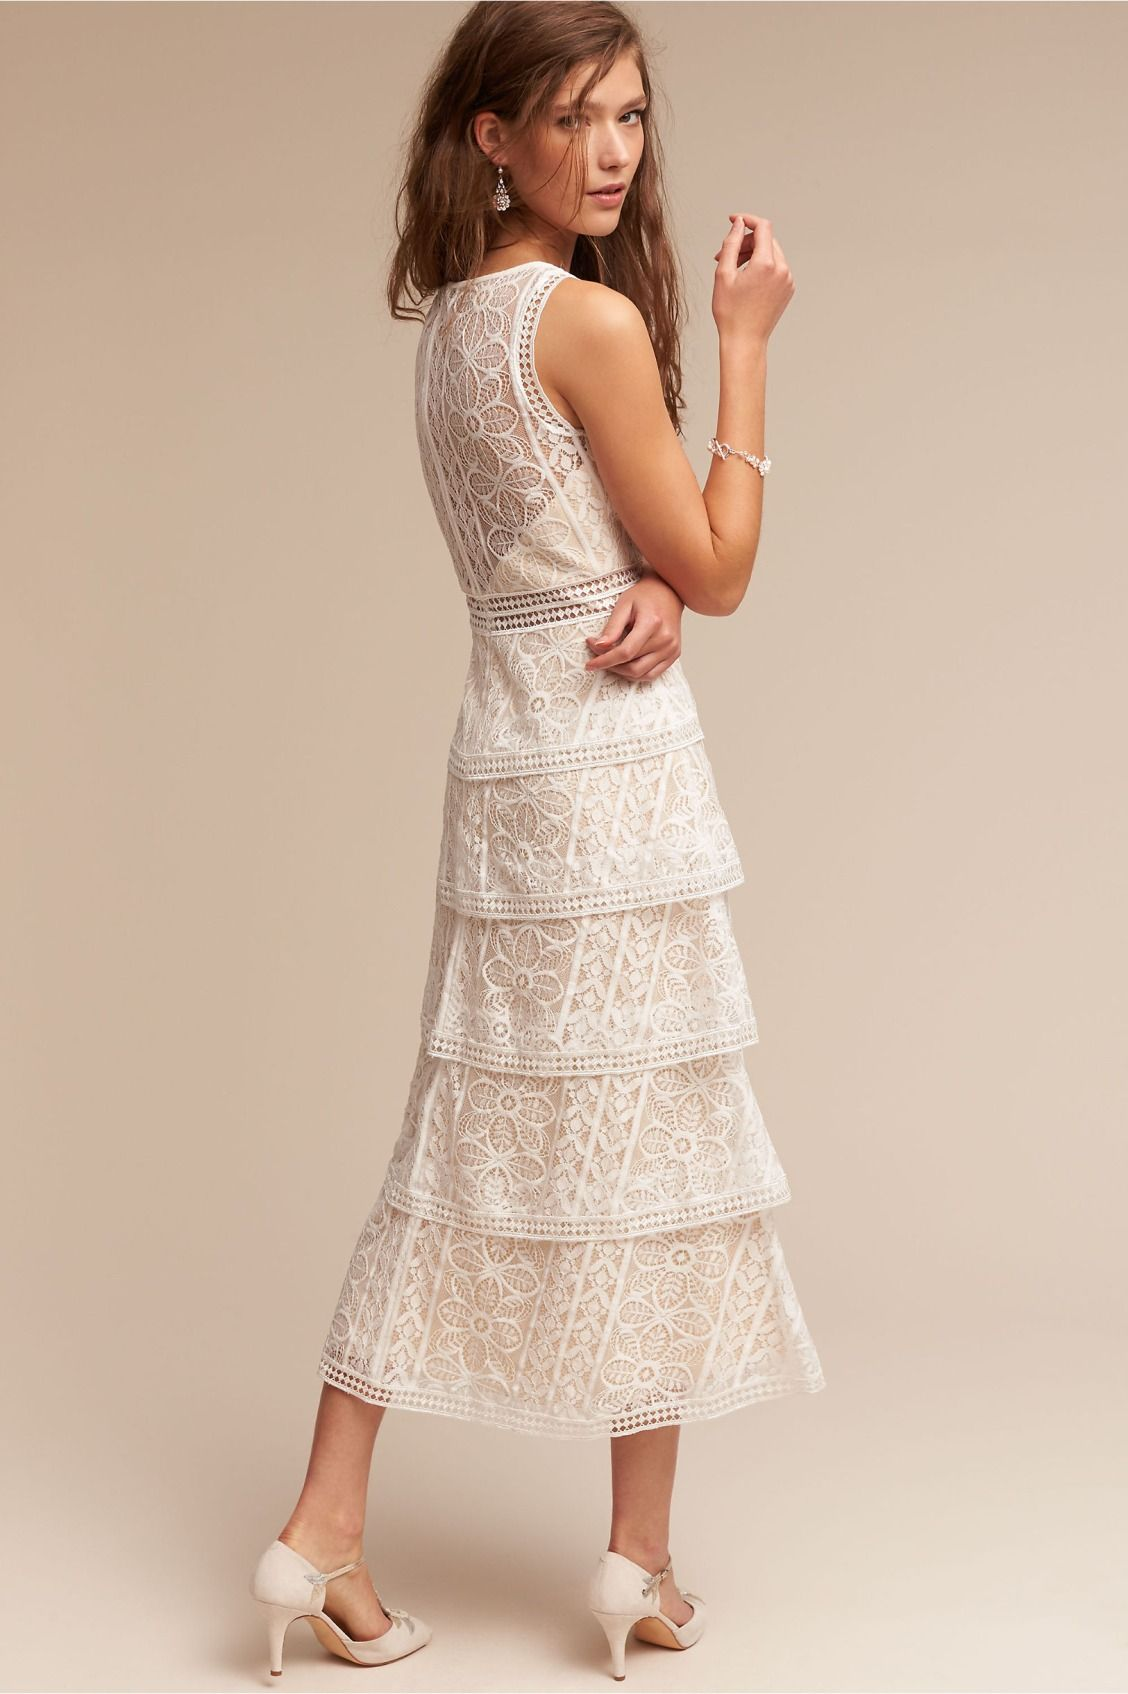 city hall bound   Adeline Dress from BHLDN   City Hall & Courthouse ...